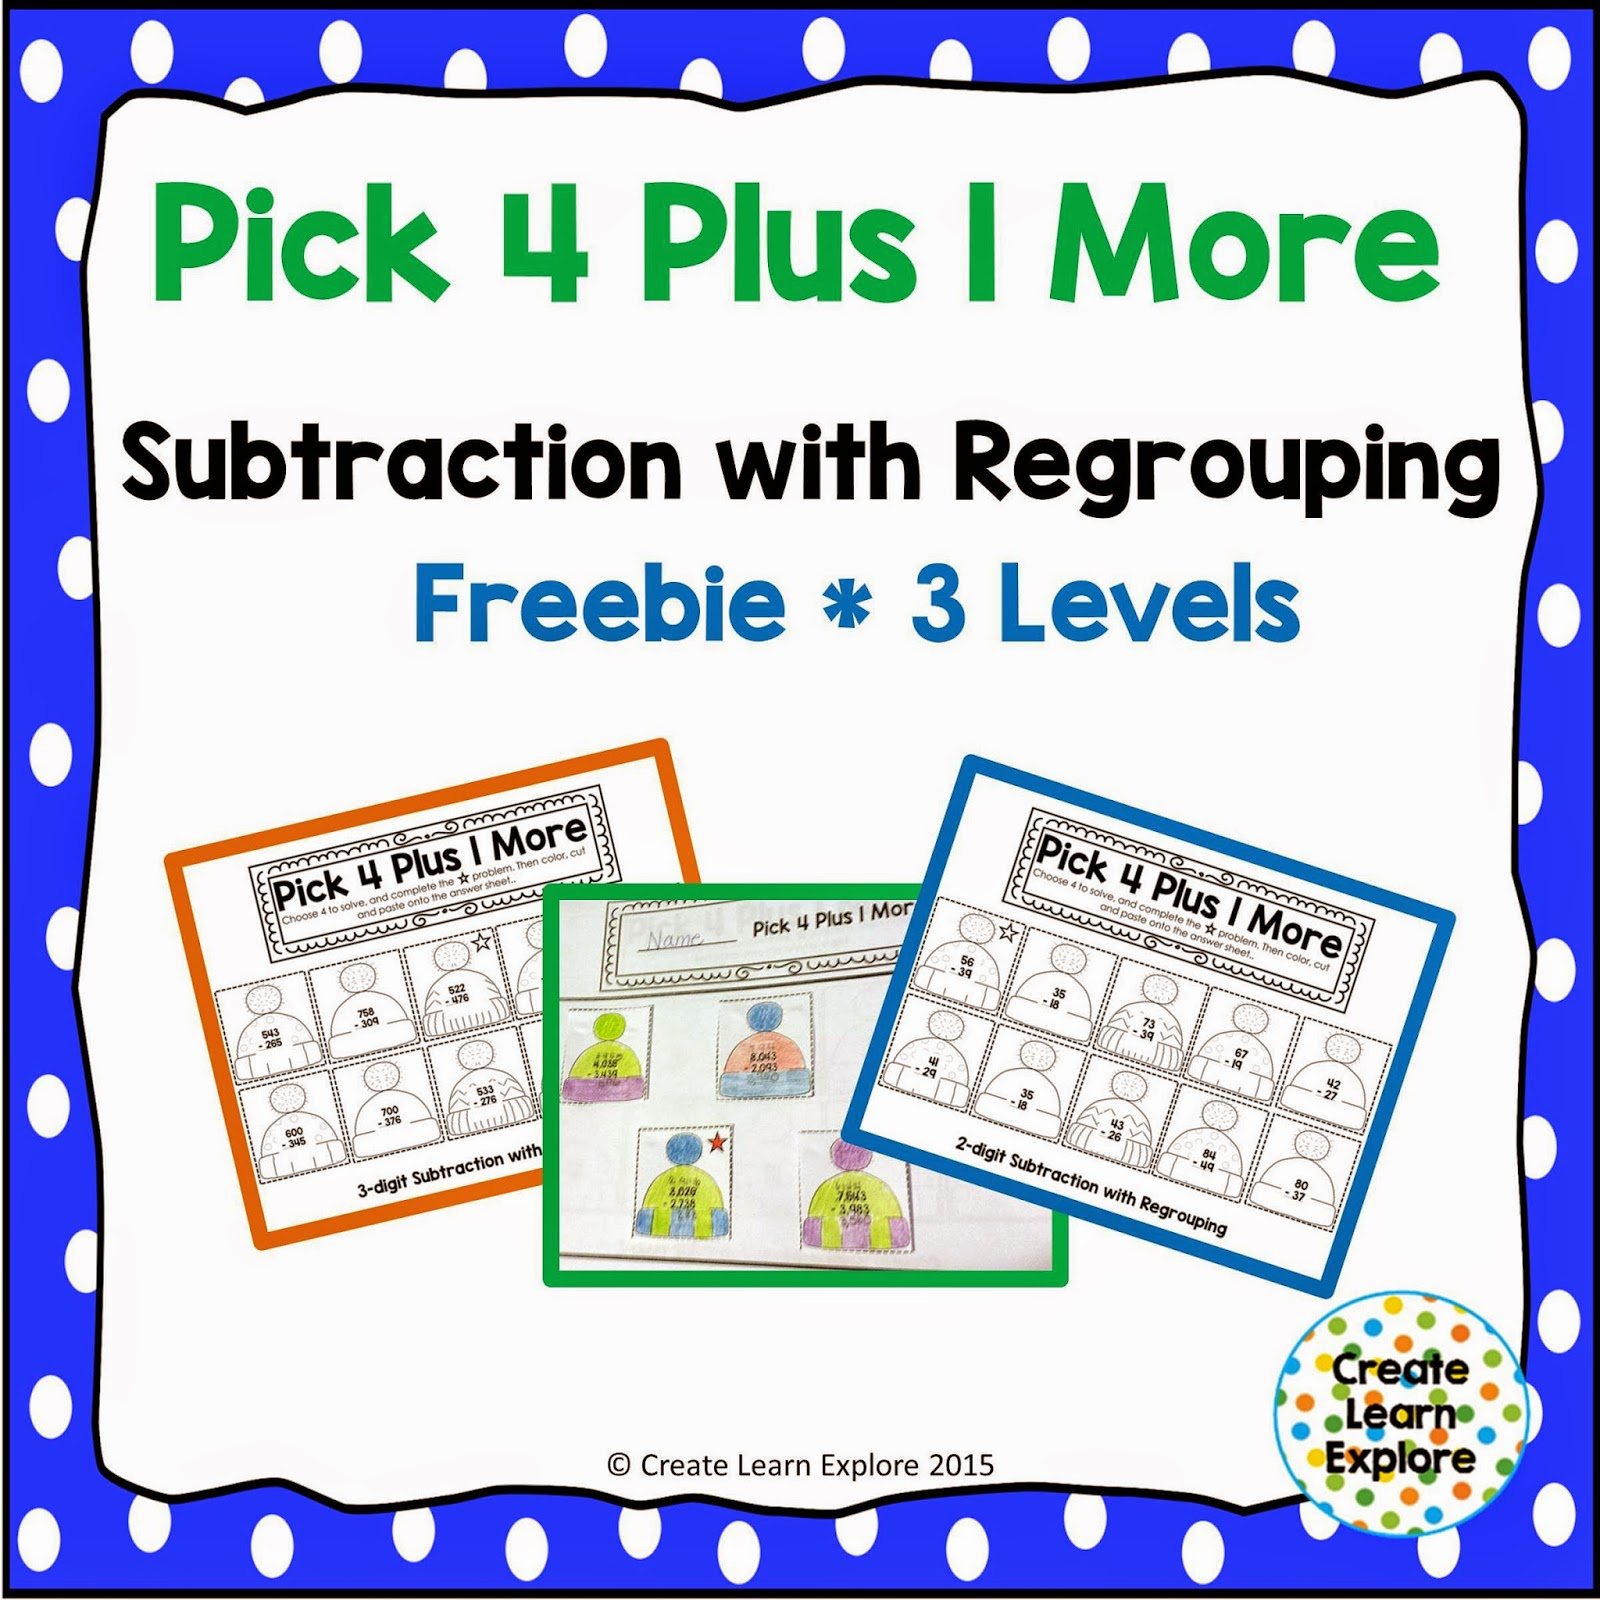 http://www.teacherspayteachers.com/Product/Subtraction-with-Regrouping-Pick-4-Plus-1-More-1639549